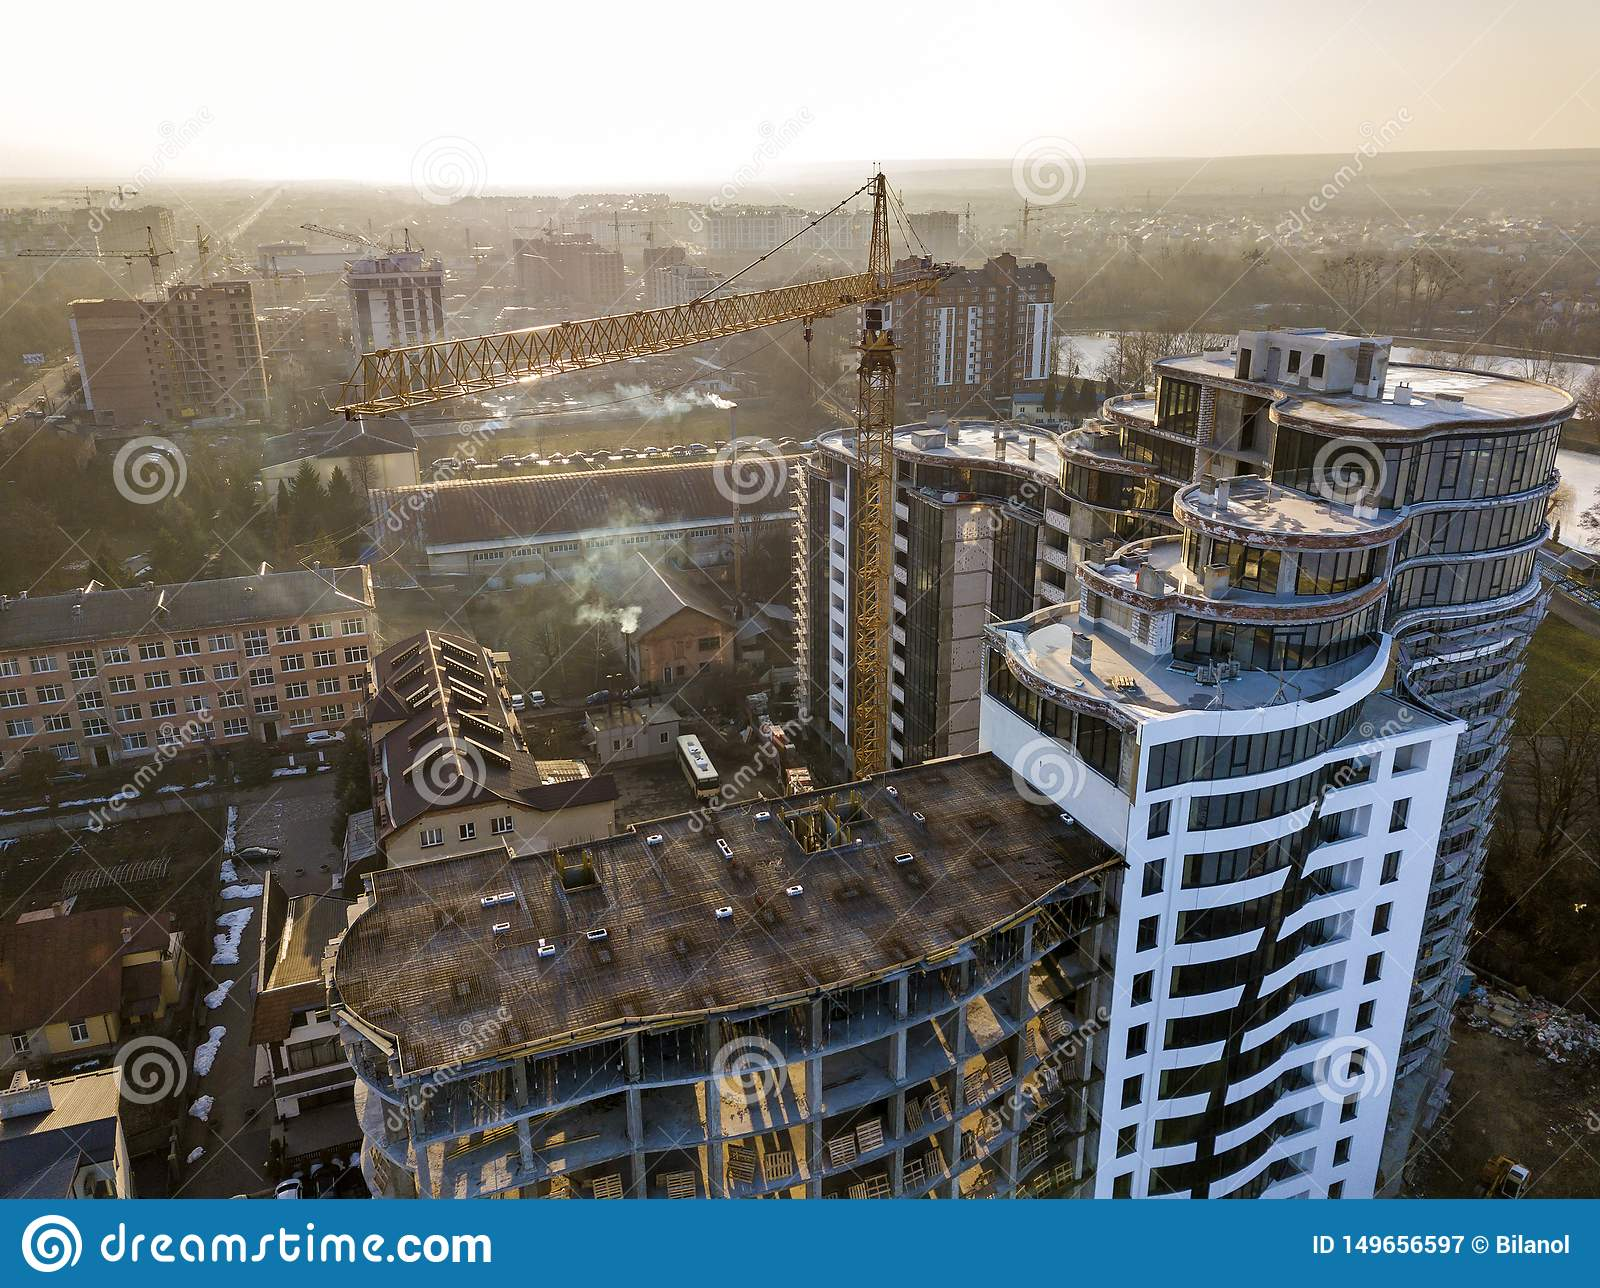 Apartment or office tall building under construction, top view. Tower crane and city landscape stretching to horizon. Drone aerial